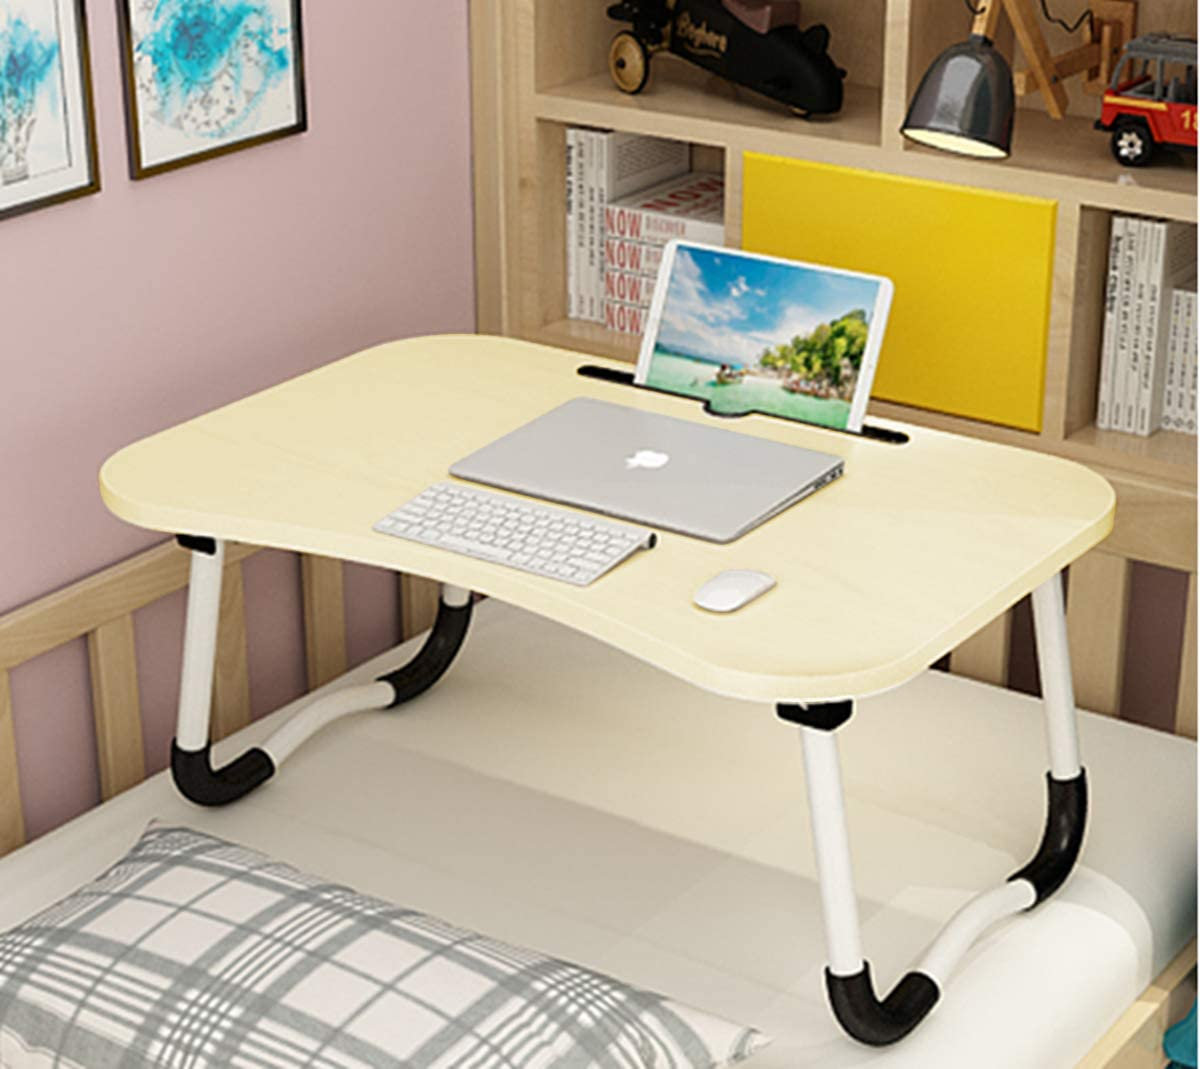 Laptop Bed Table, Breakfast Tray with fold-able Legs, Portable Lap Standing Desk, Notebook Stand Reading Holder for Couch Sofa Floor Kids - Standard Size